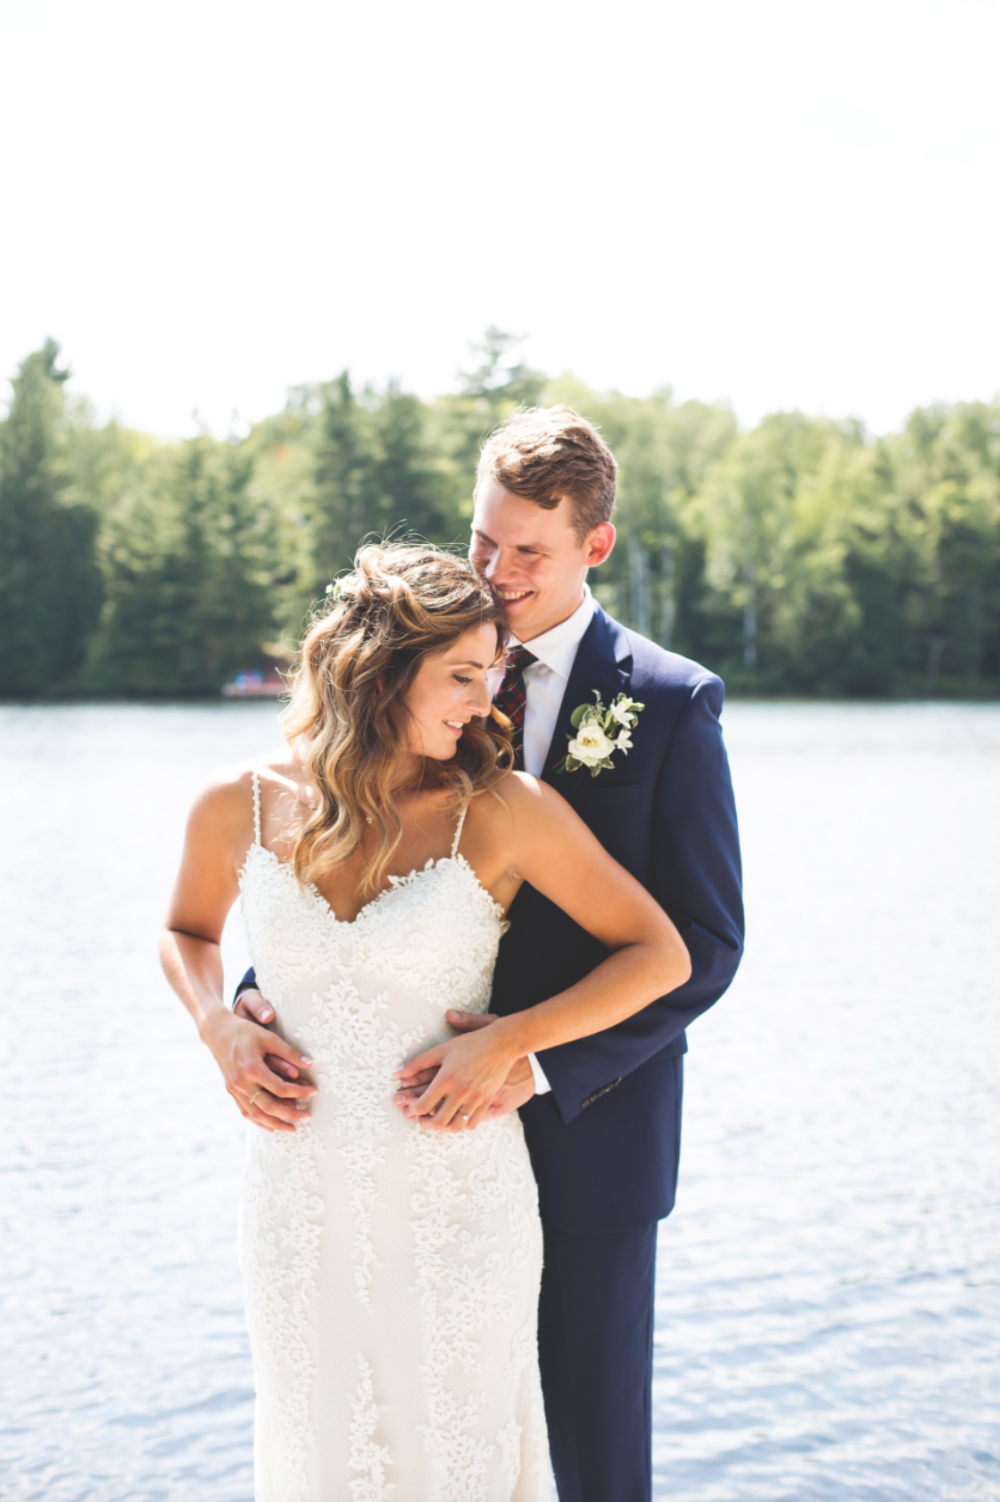 Wedding-Photos-Muskoka-Clevelands-House-Photographer-Wedding-Hamilton-GTA-Niagara-Oakville-Moments-by-Lauren-Photography-Photo-Image-42.png